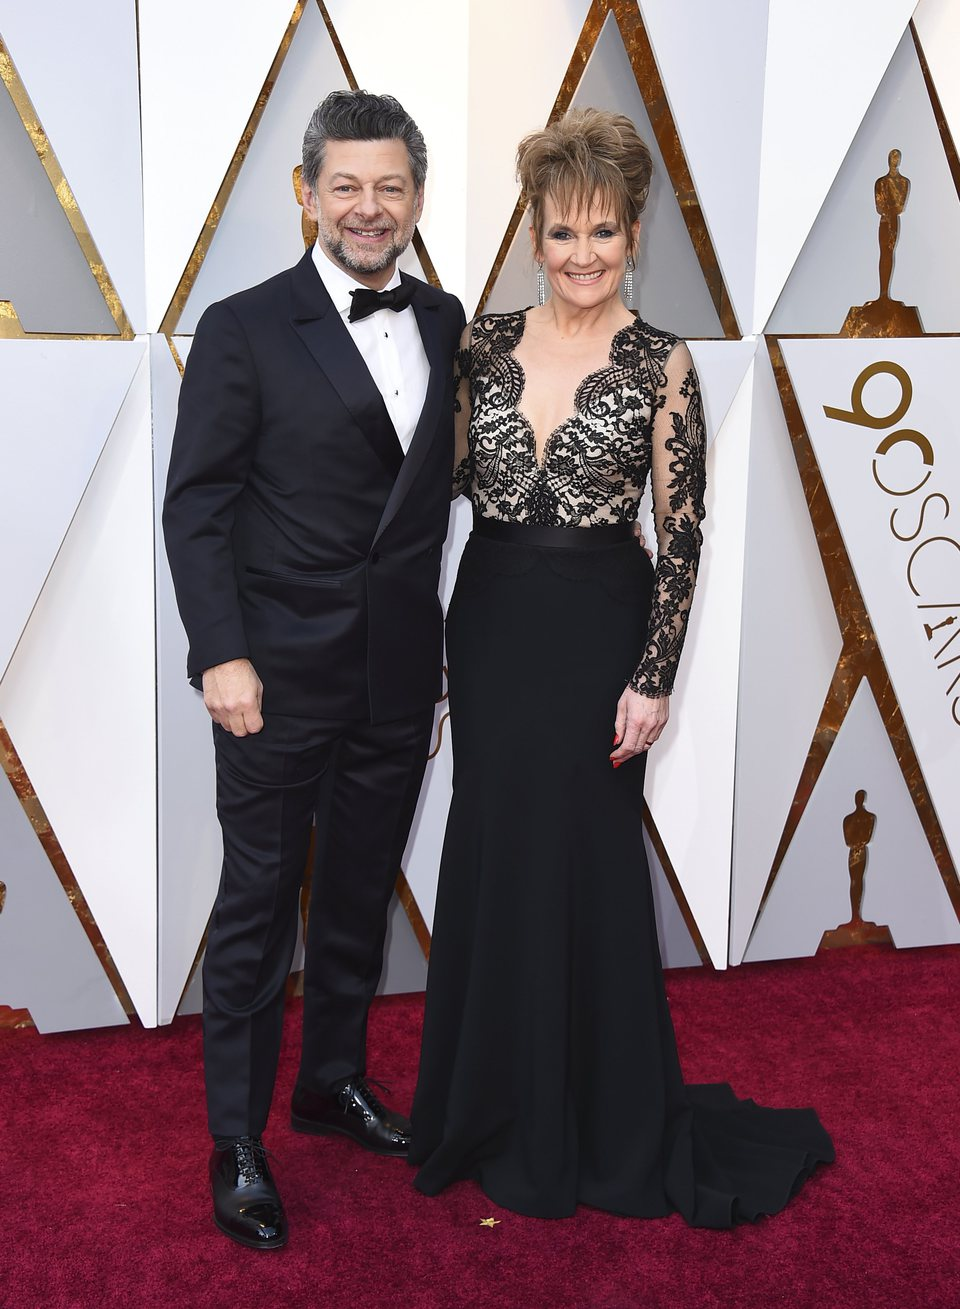 Andy Serkis and Lorraine Ashbourne at the Oscars 2018 red carpet